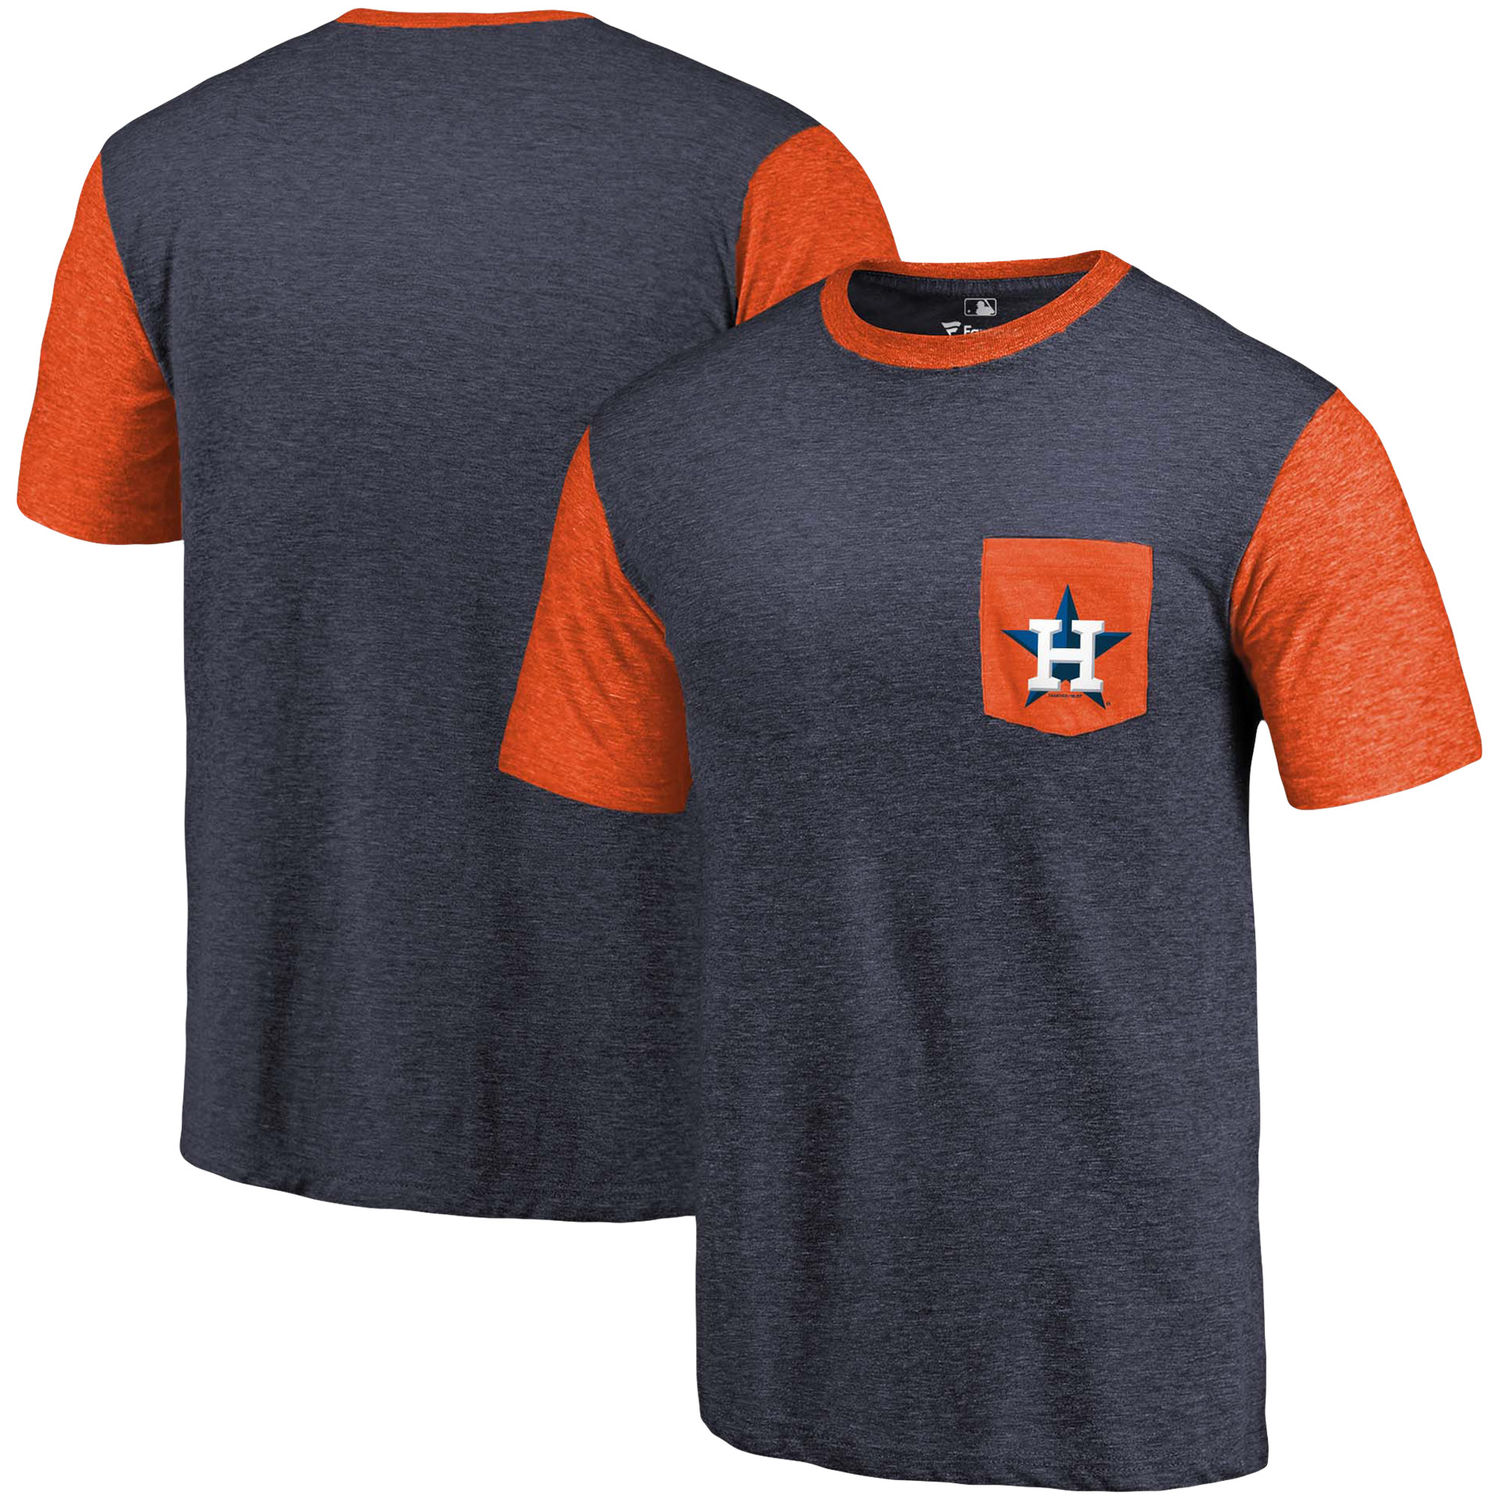 Men's Houston Astros Fanatics Branded Navy-Orange Refresh Pocket T-Shirt